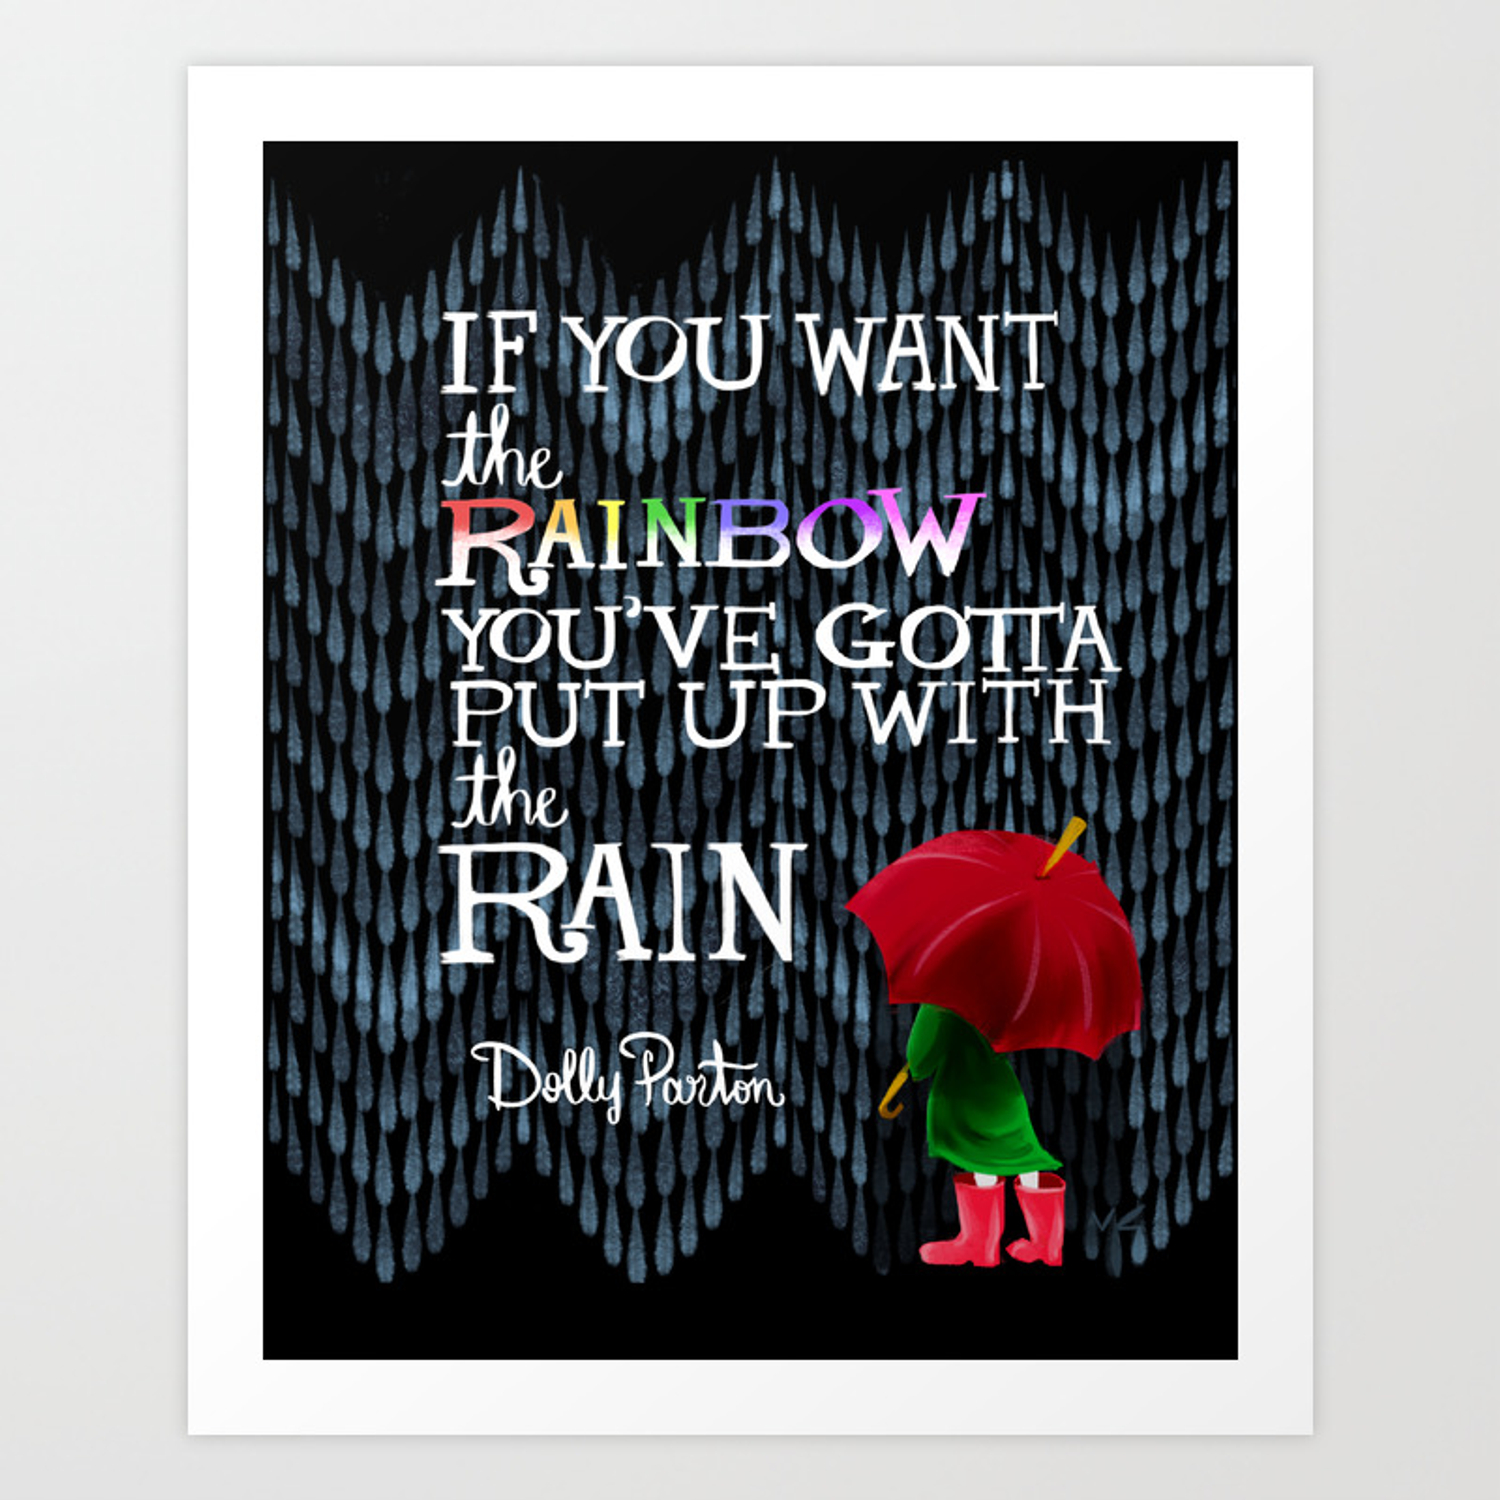 12x16 inches Dolly Parton Inspirational Quote Unframed Poster Print If You Want The Rainbow You Gotta Put Up With The Rain